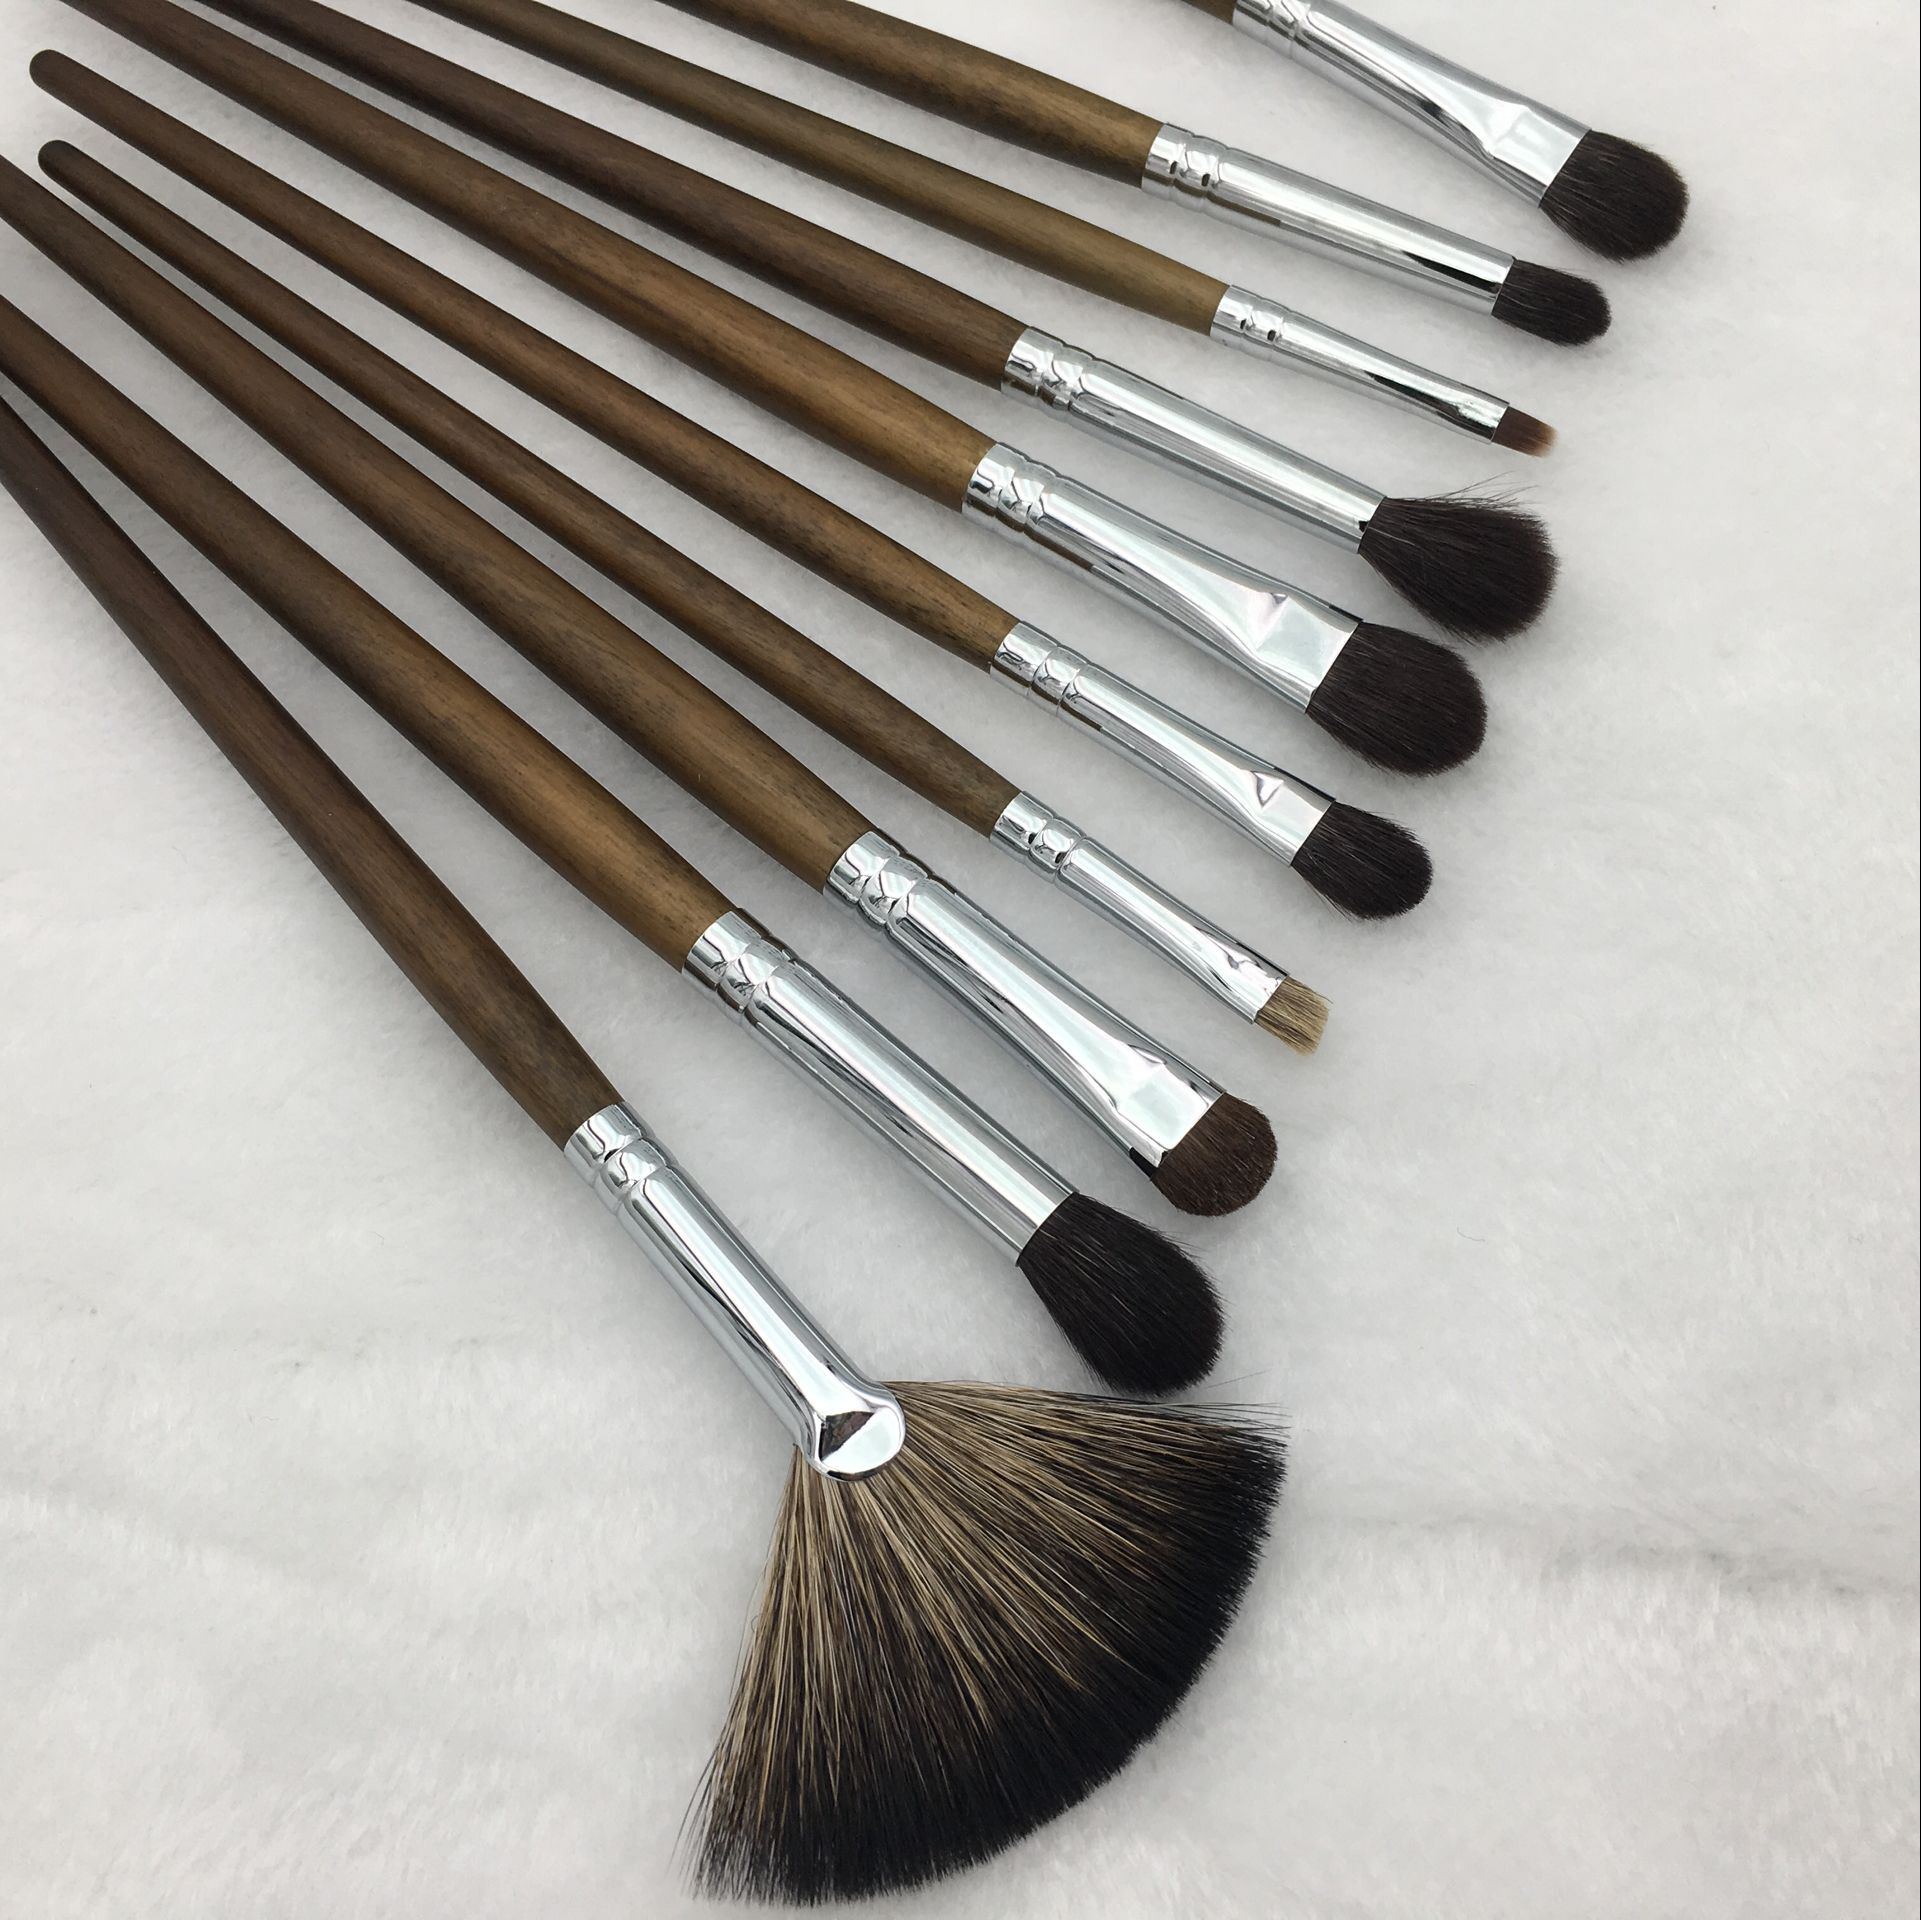 4 bags, ancient hair brush, animal hair, eye brush, eyebrow, brush, dizzy eye, nose shadow brush, concealer brush, and other brush.